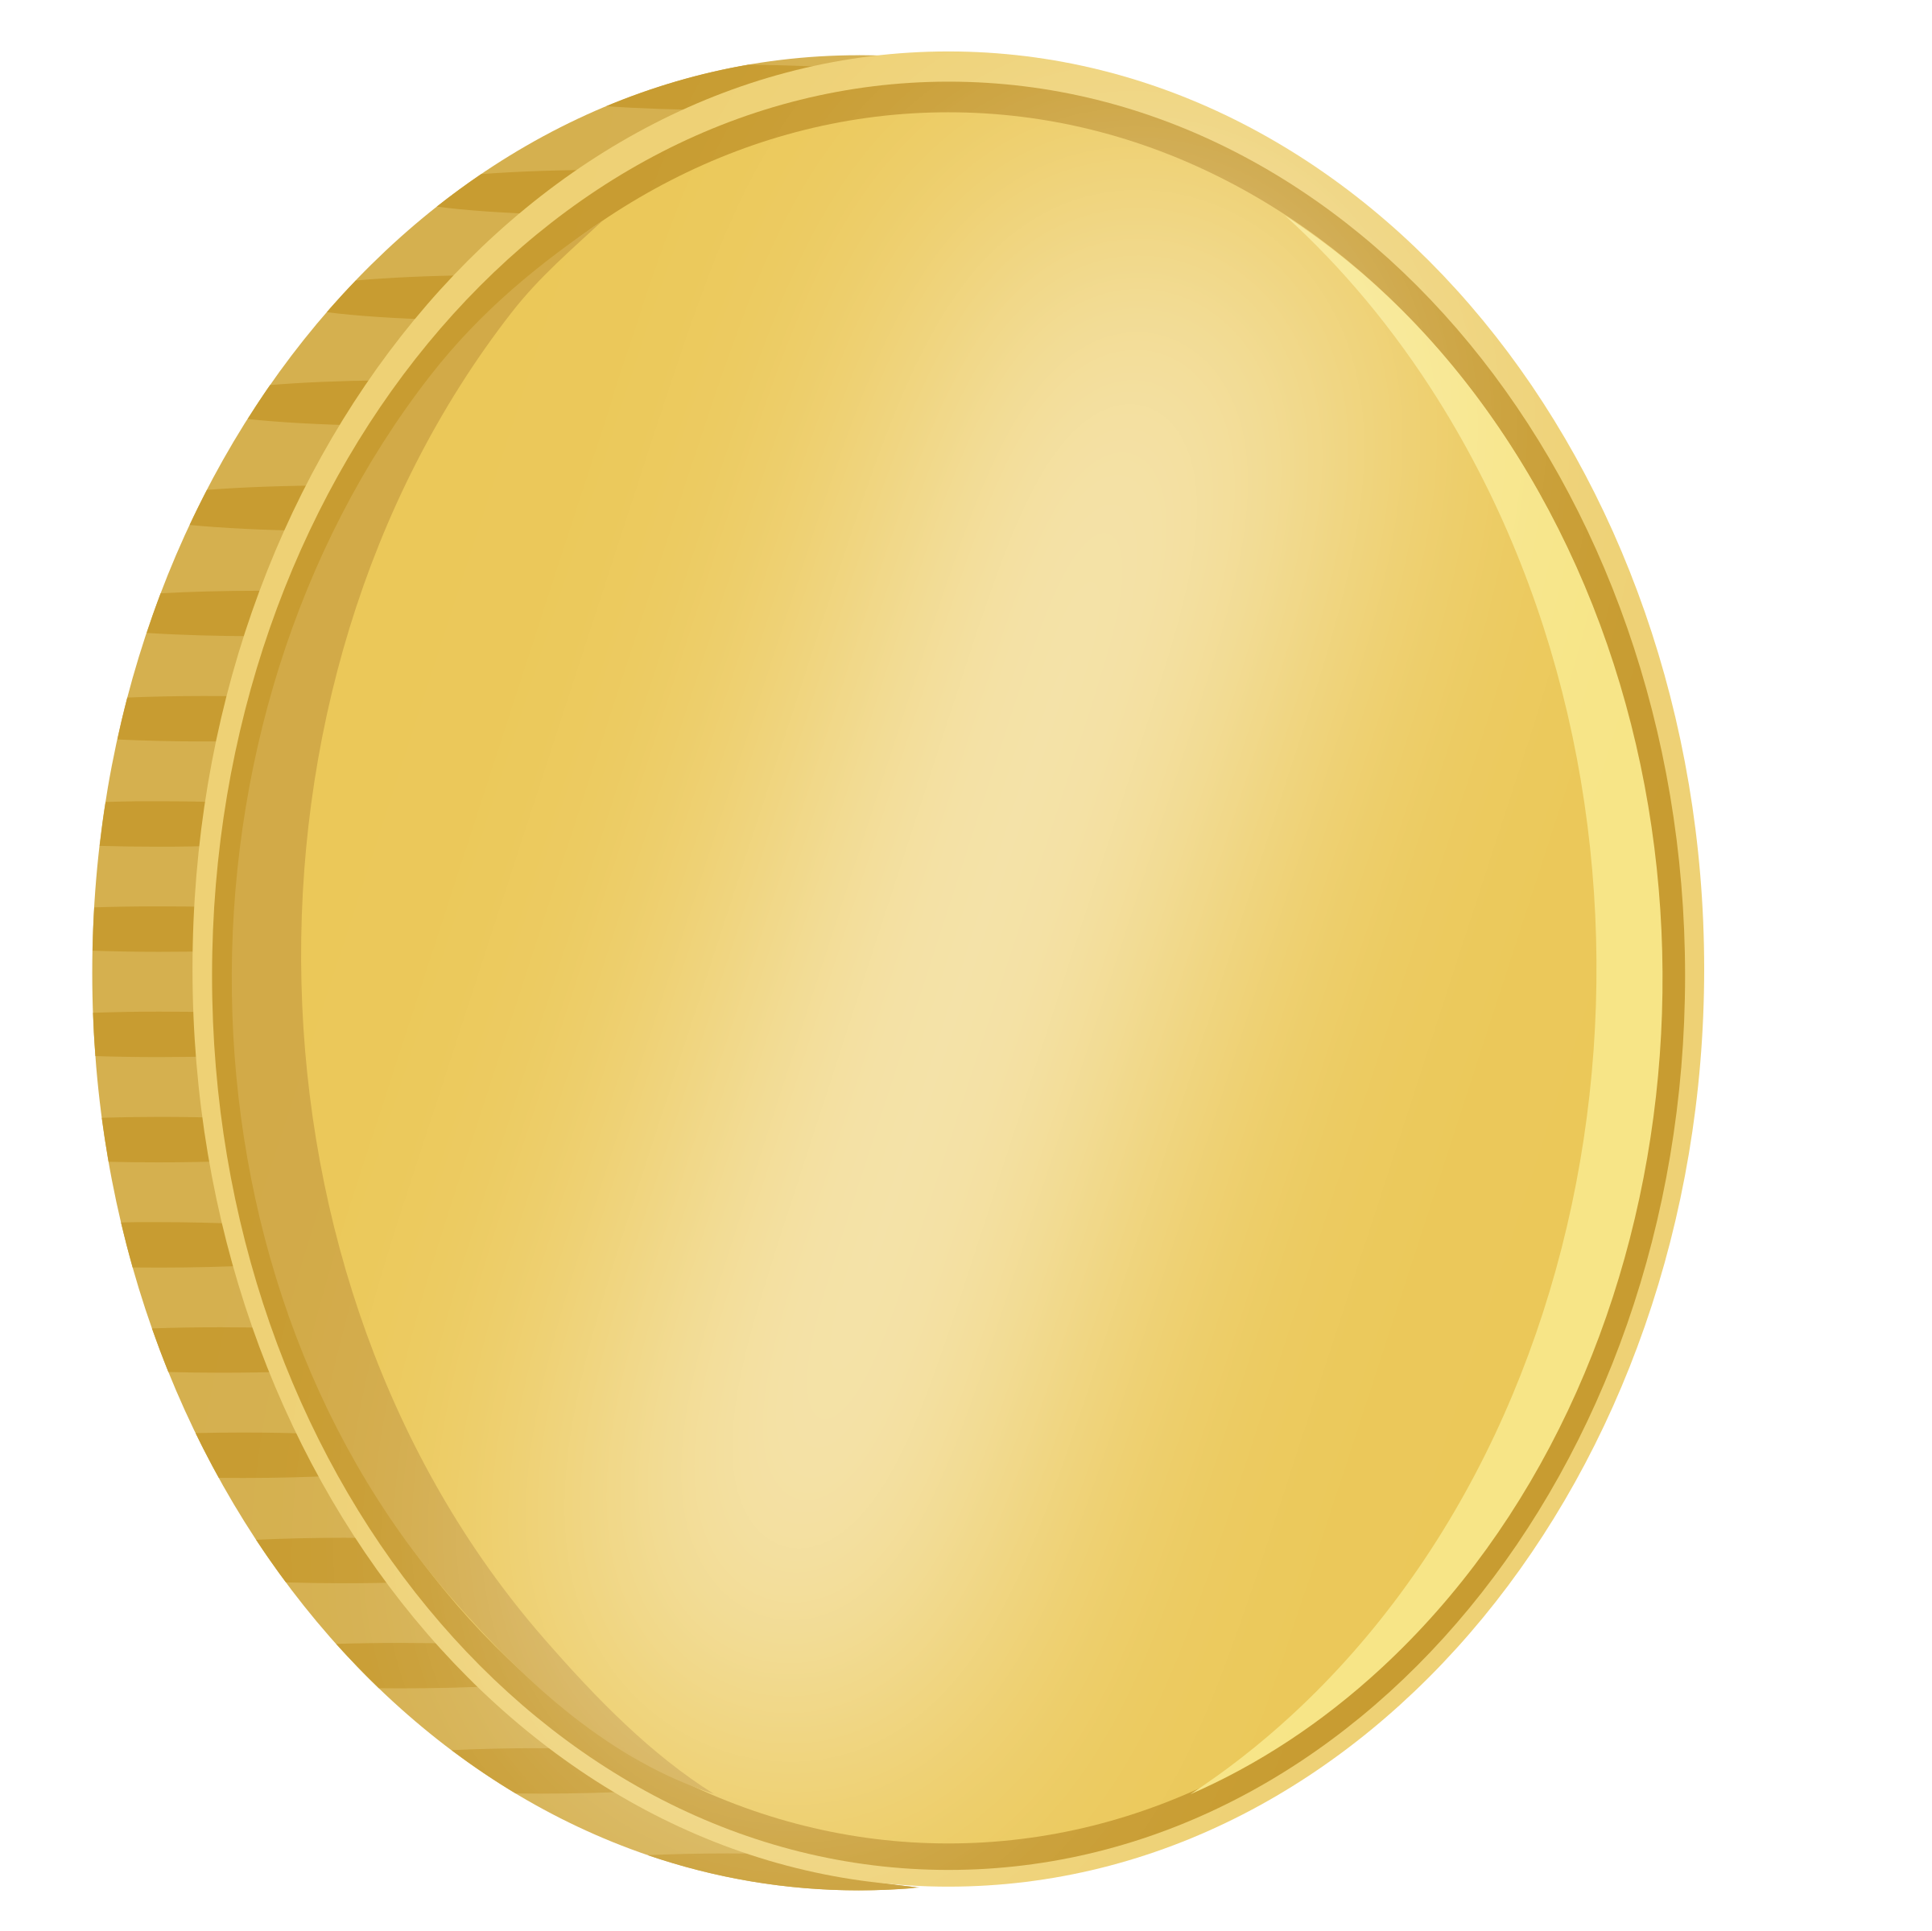 gold coin PNG image - Coin HD PNG